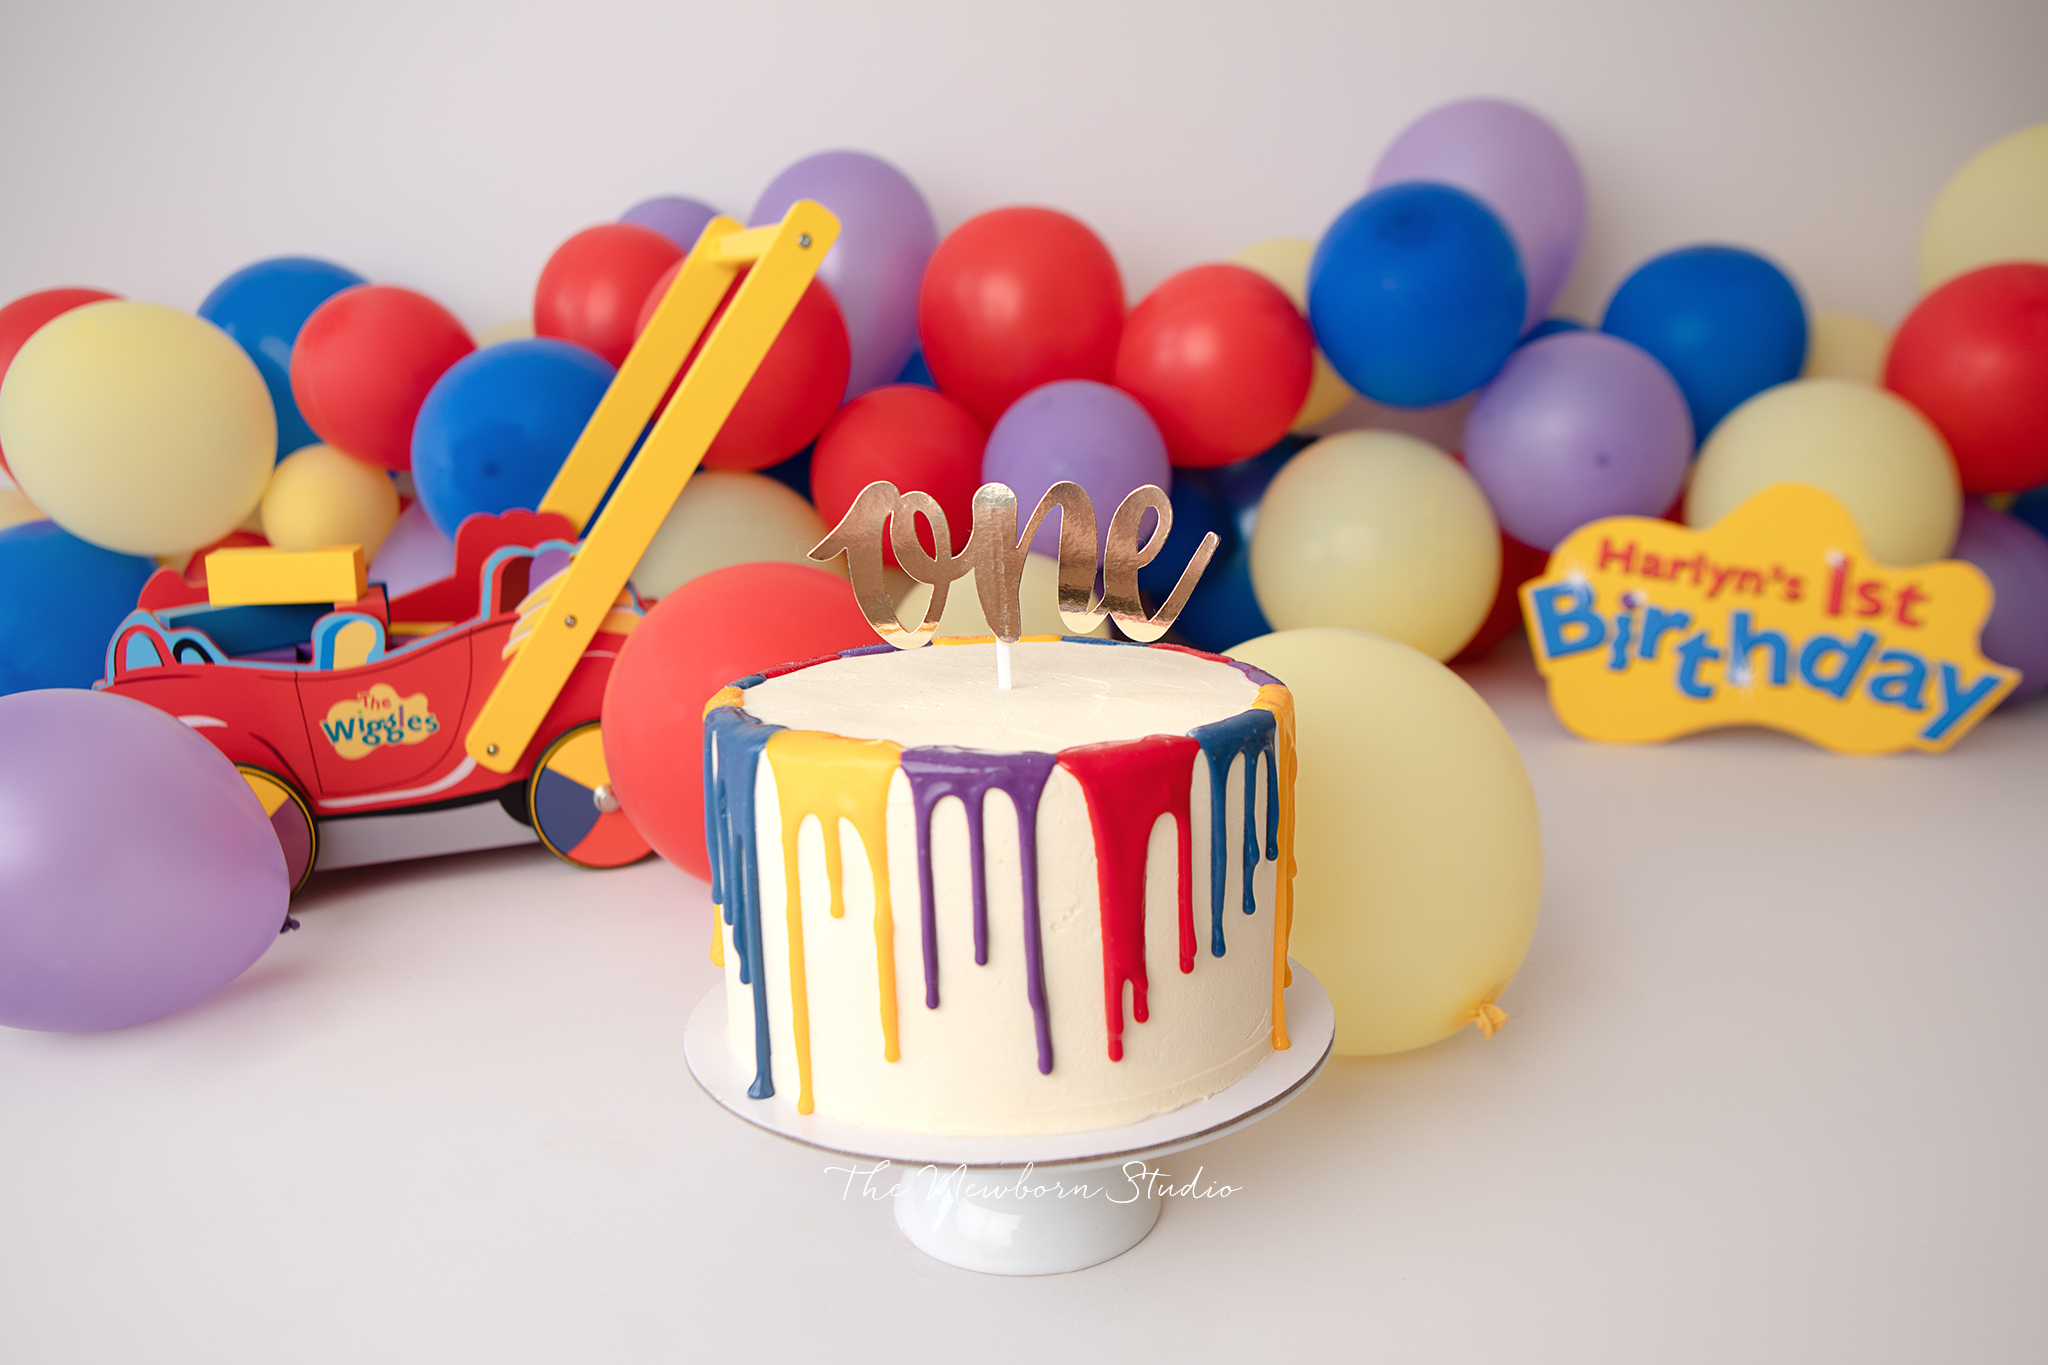 what's involved in a cake smash?